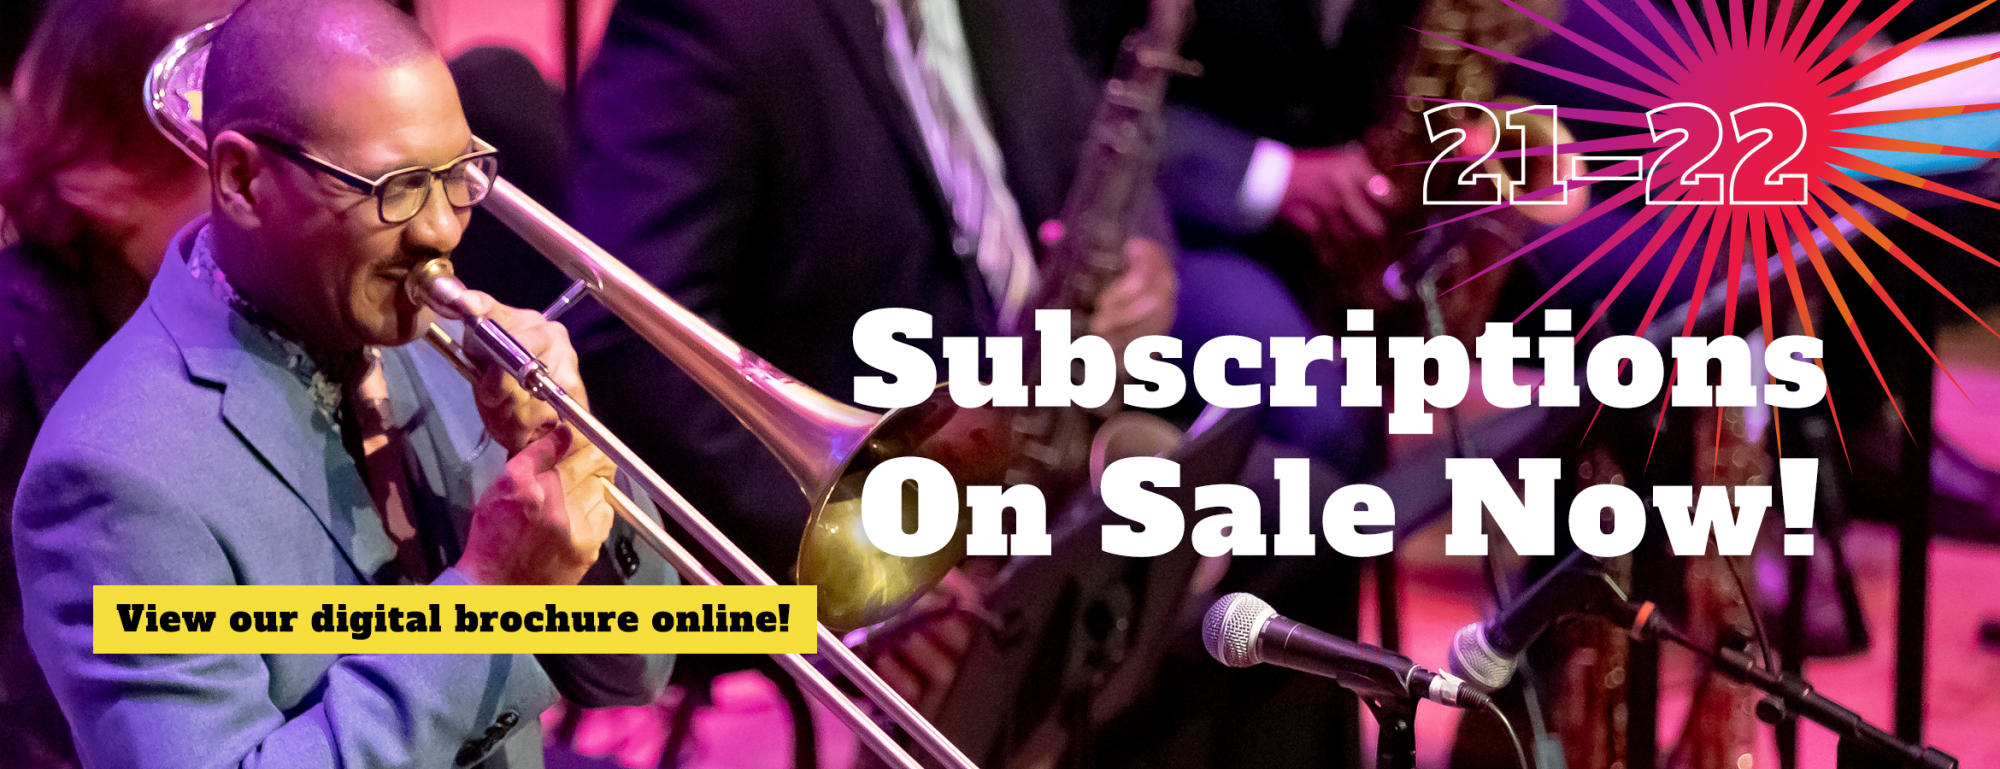 21-22 Subscriptions are on sale now! Click to view our digital brochure online..